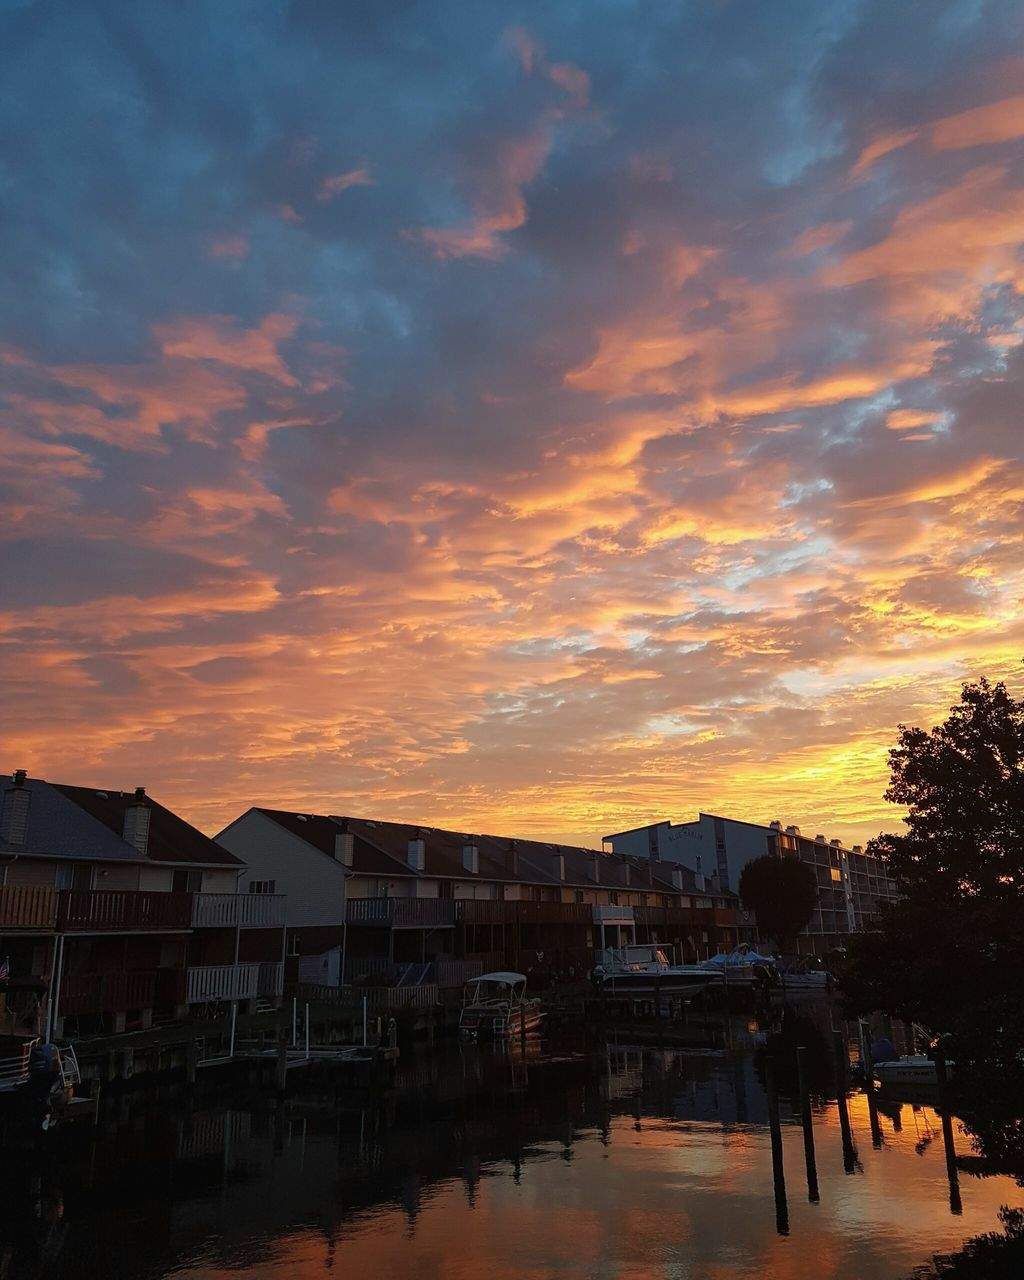 sunset, built structure, architecture, sky, building exterior, orange color, cloud - sky, no people, outdoors, tranquility, nature, beauty in nature, tree, city, day